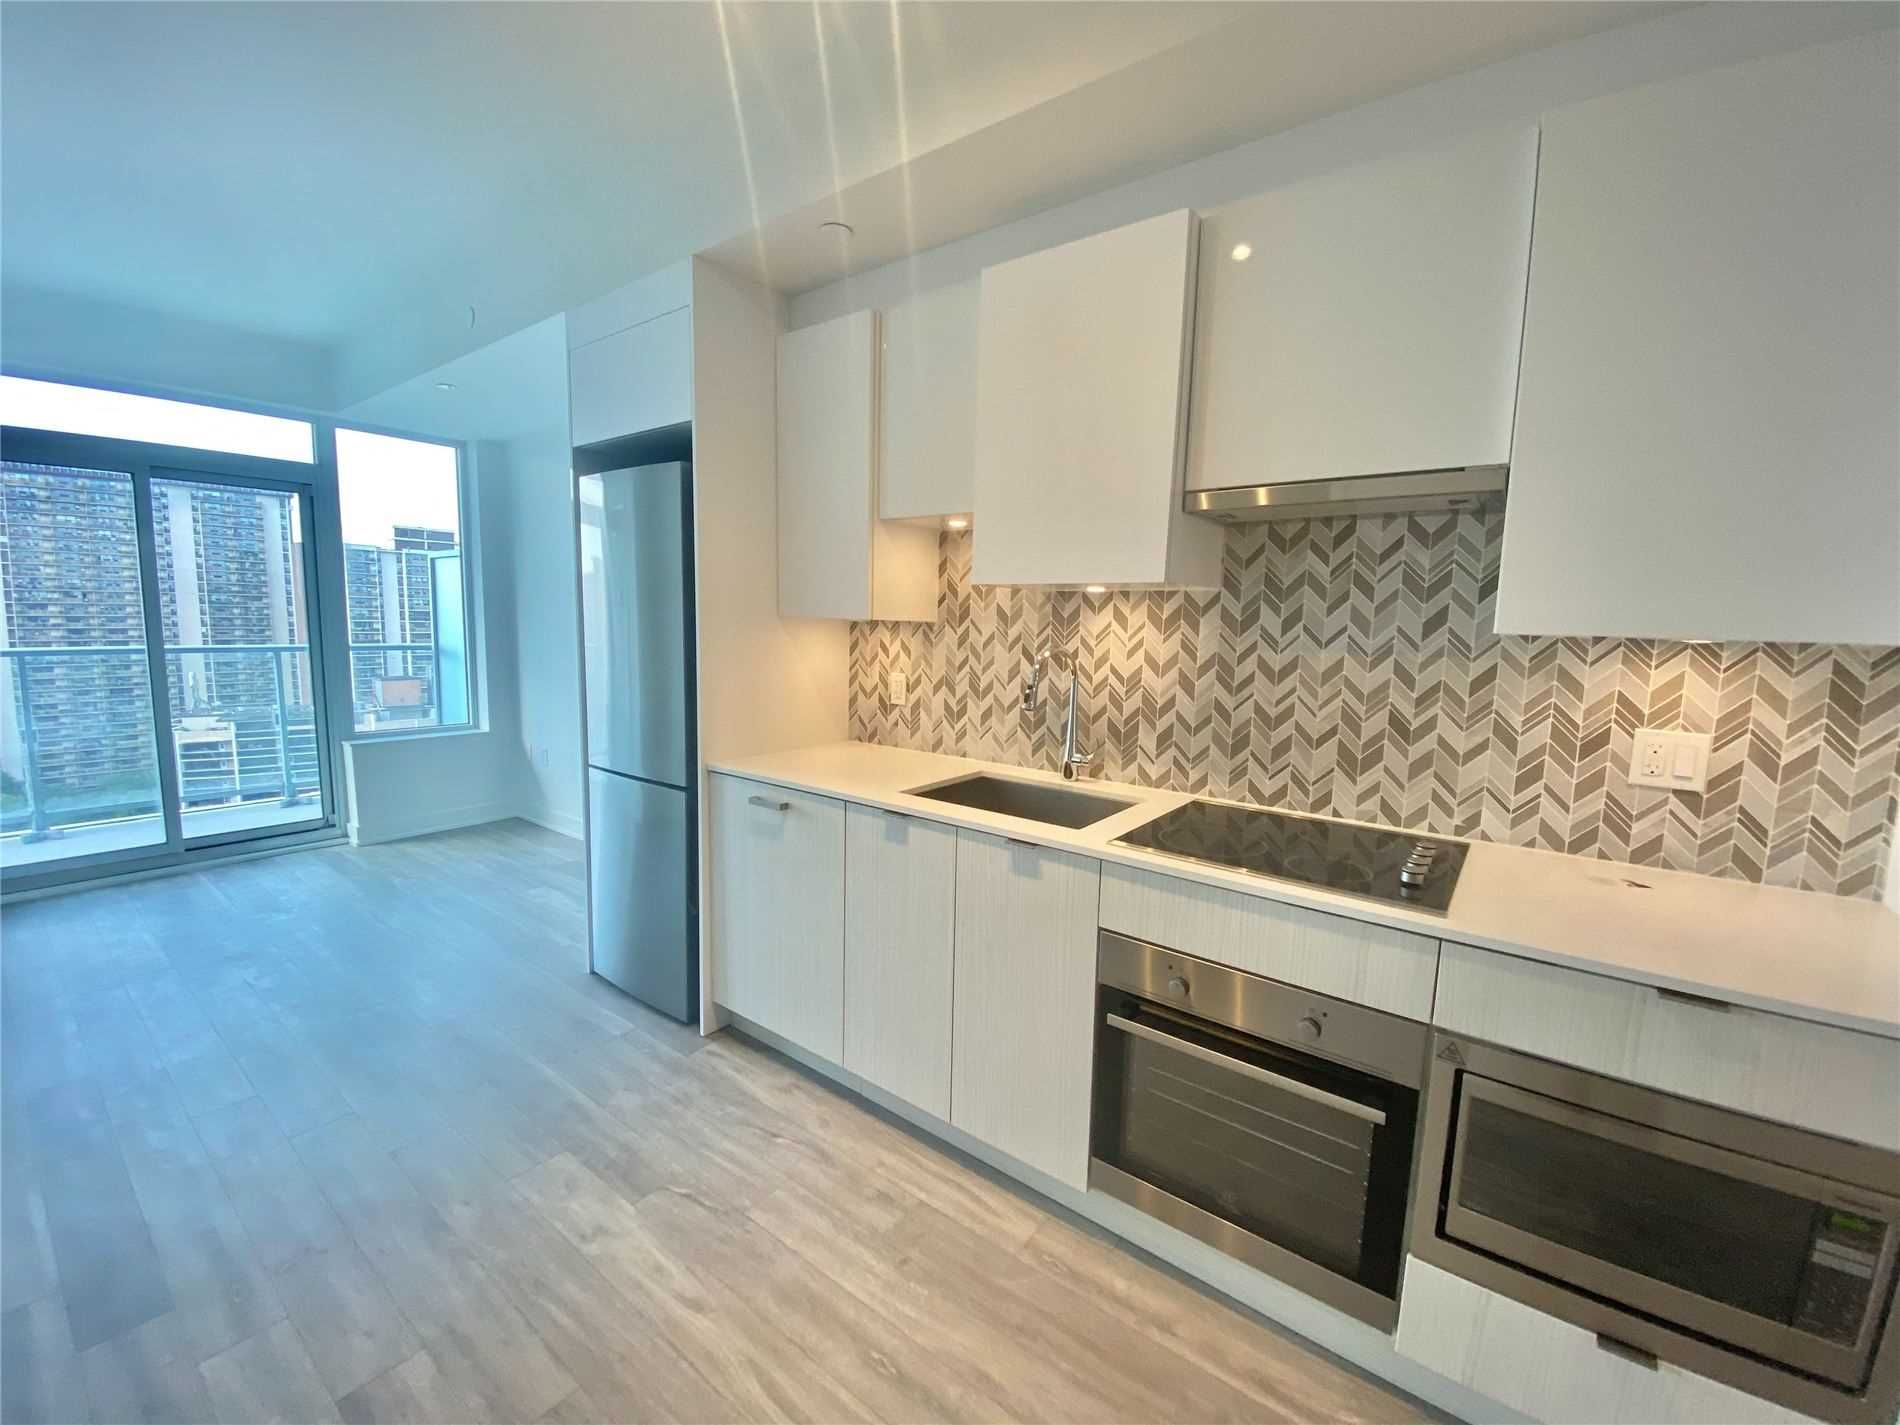 99 Broadway  Ave, unit 1801 Nt for rent in Toronto - image #1